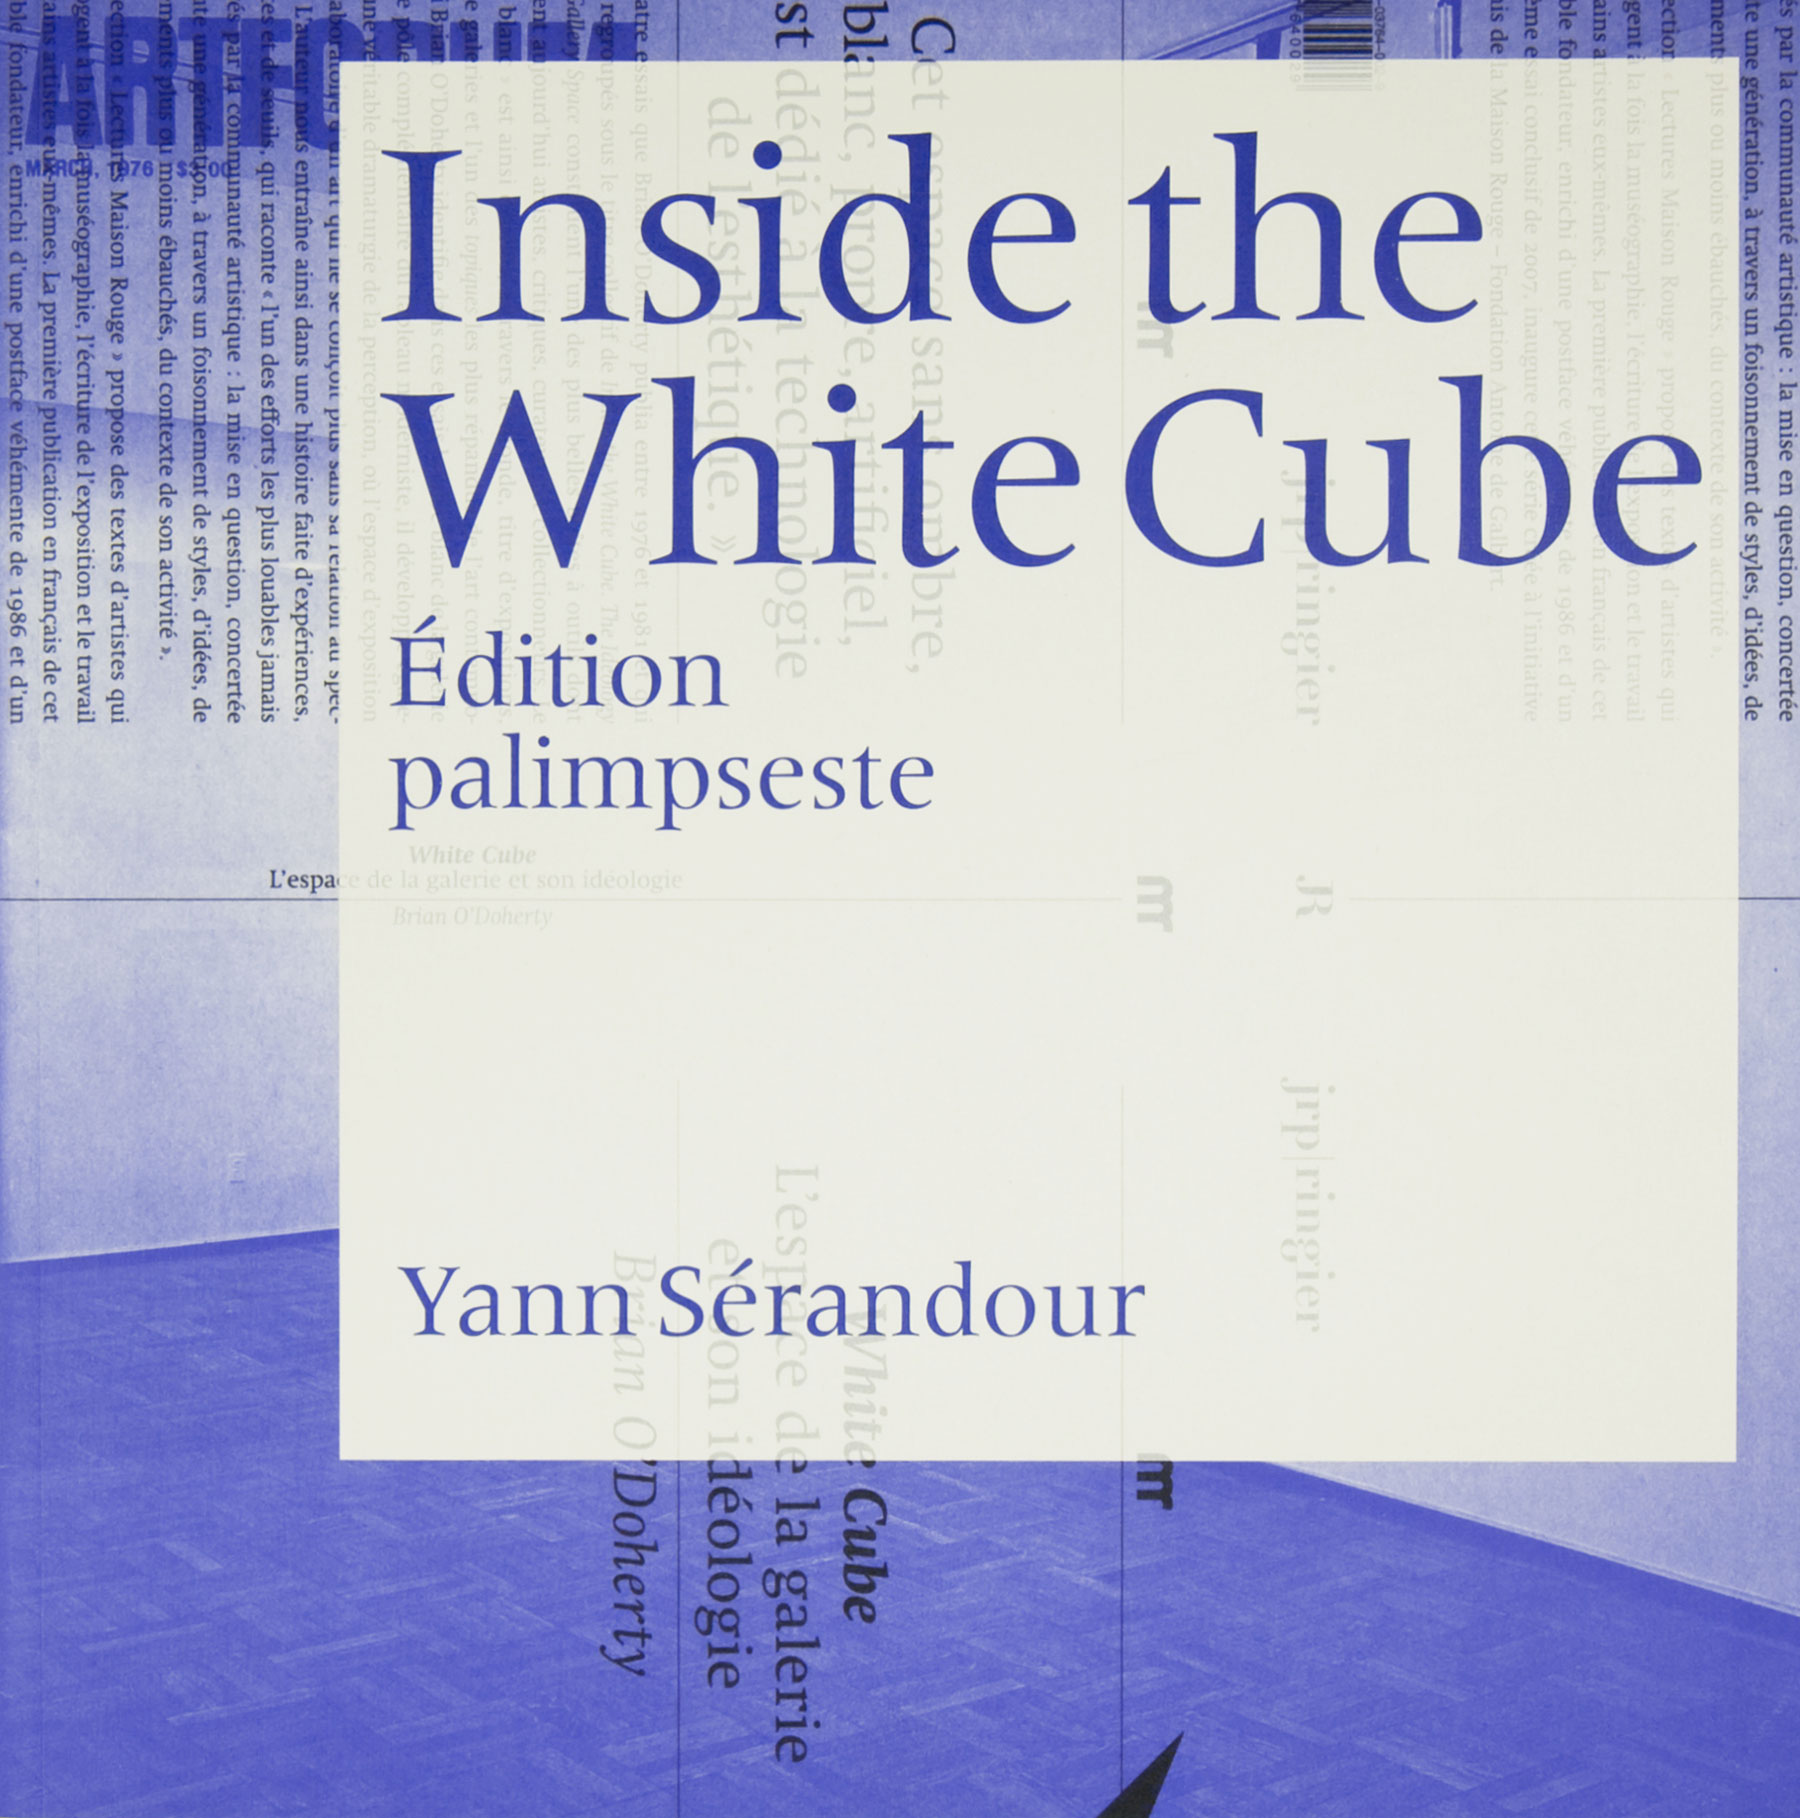 Inside the White Cube – Yann Sérandour